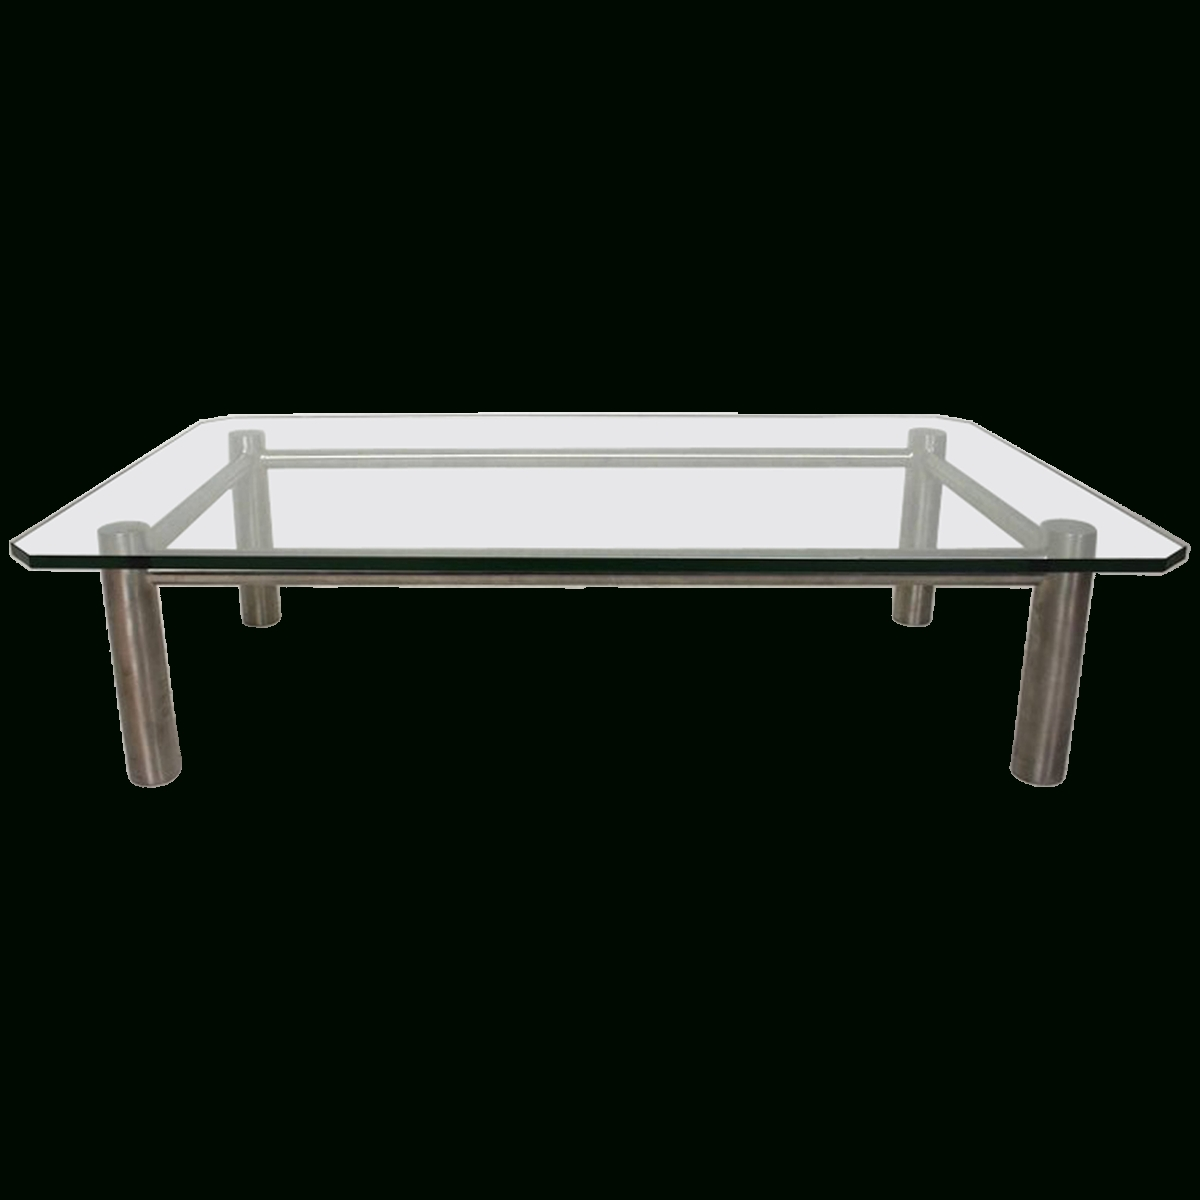 Viyet – Designer Furniture – Tables – Benchmark Vintage Stainless With Regard To Fashionable Steel And Glass Coffee Tables (Gallery 16 of 20)